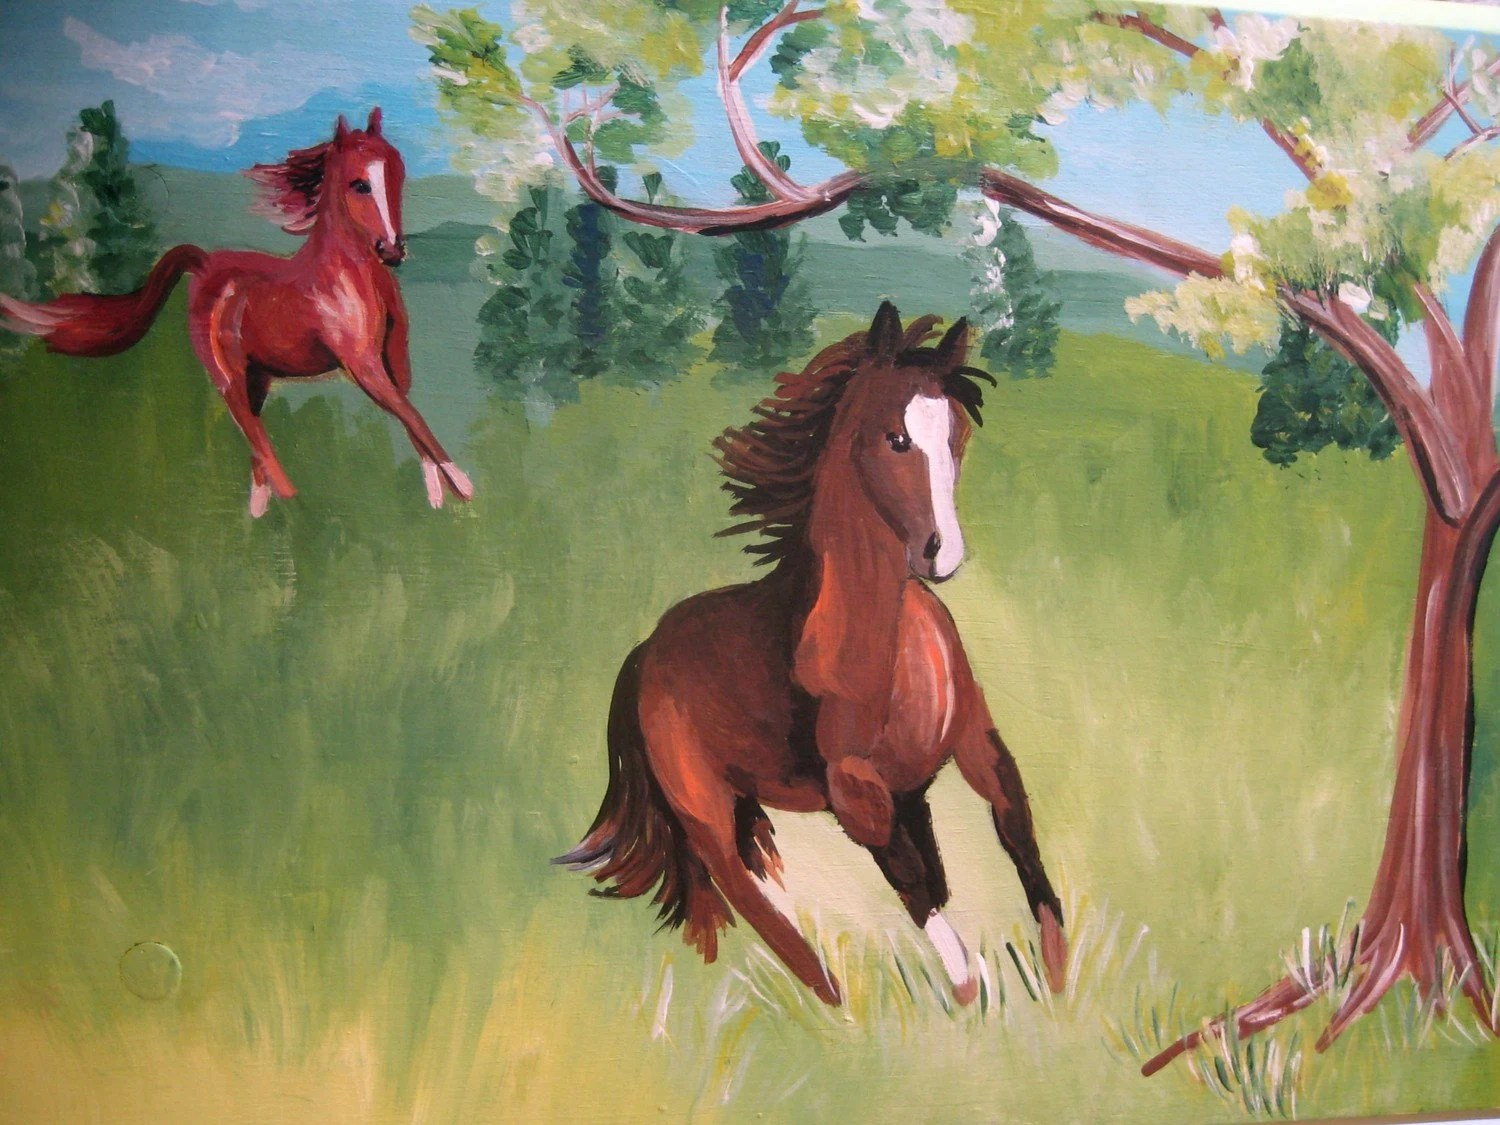 Horses Running In A Field Painted Step By Thepresentplace On Etsy